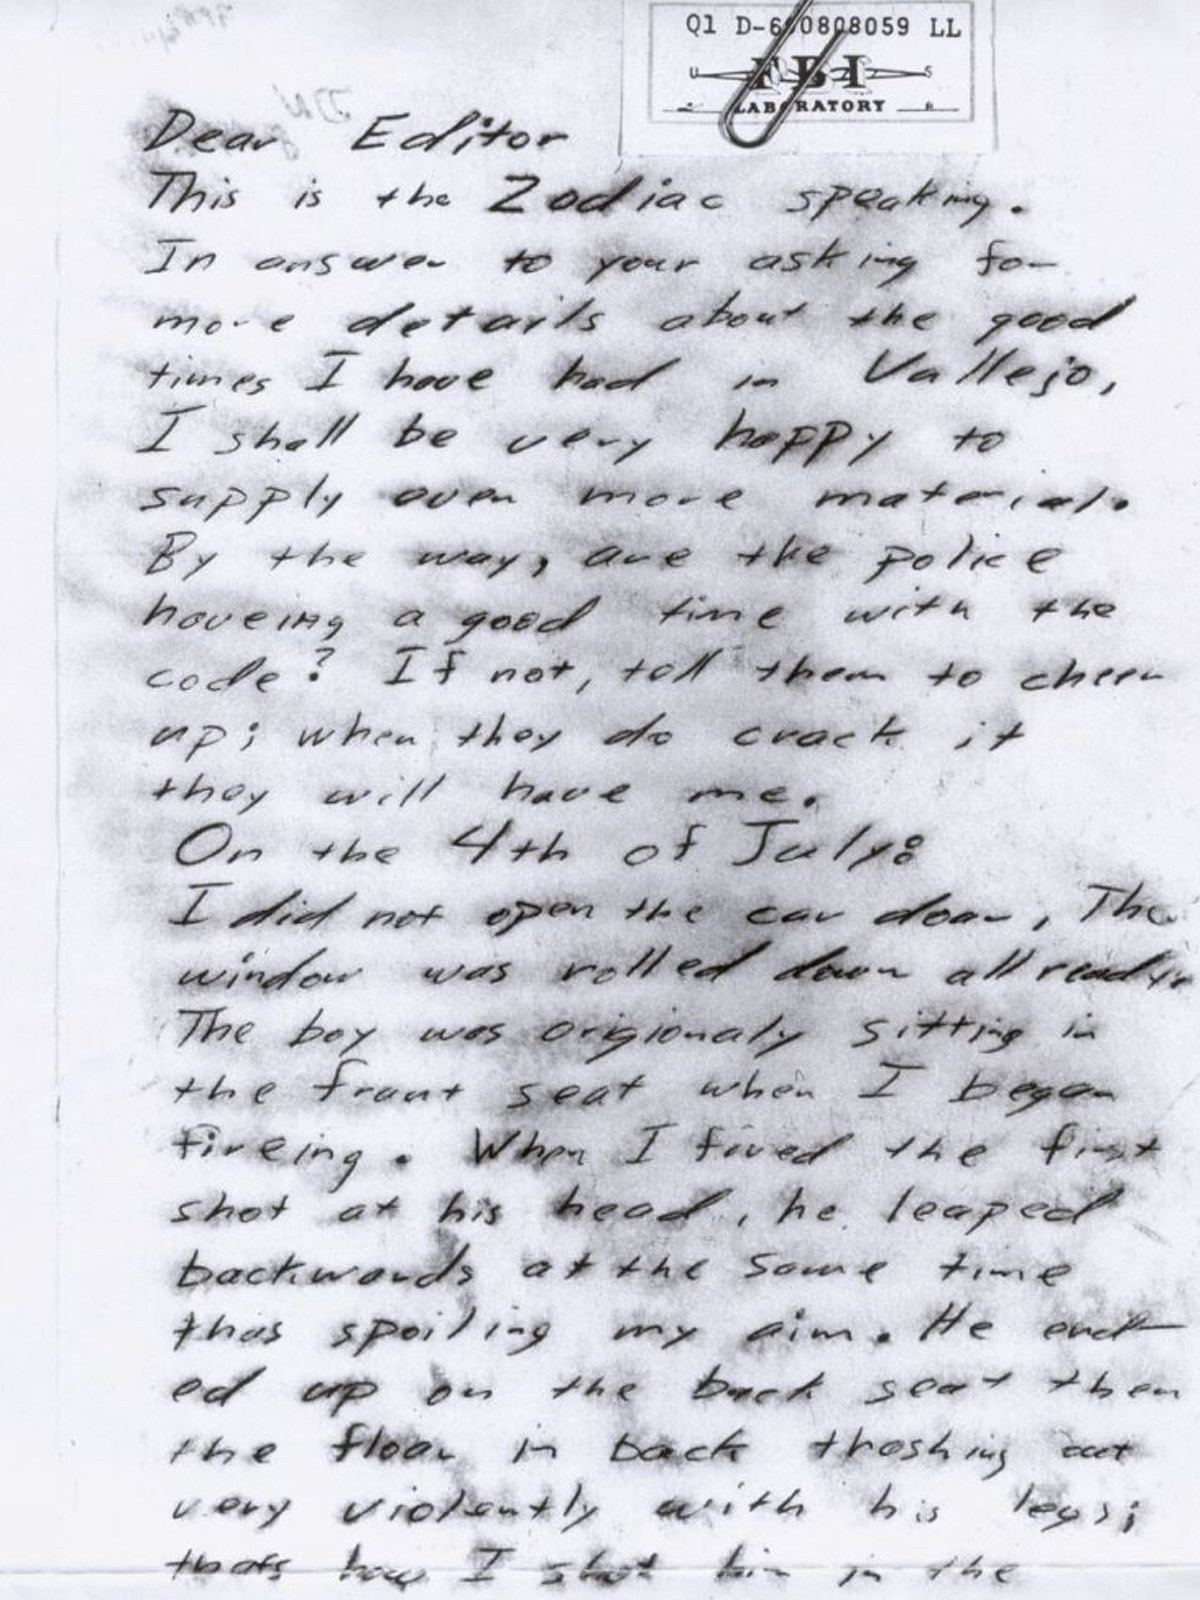 A second letter received tried to offer proof that the writer was the real killer